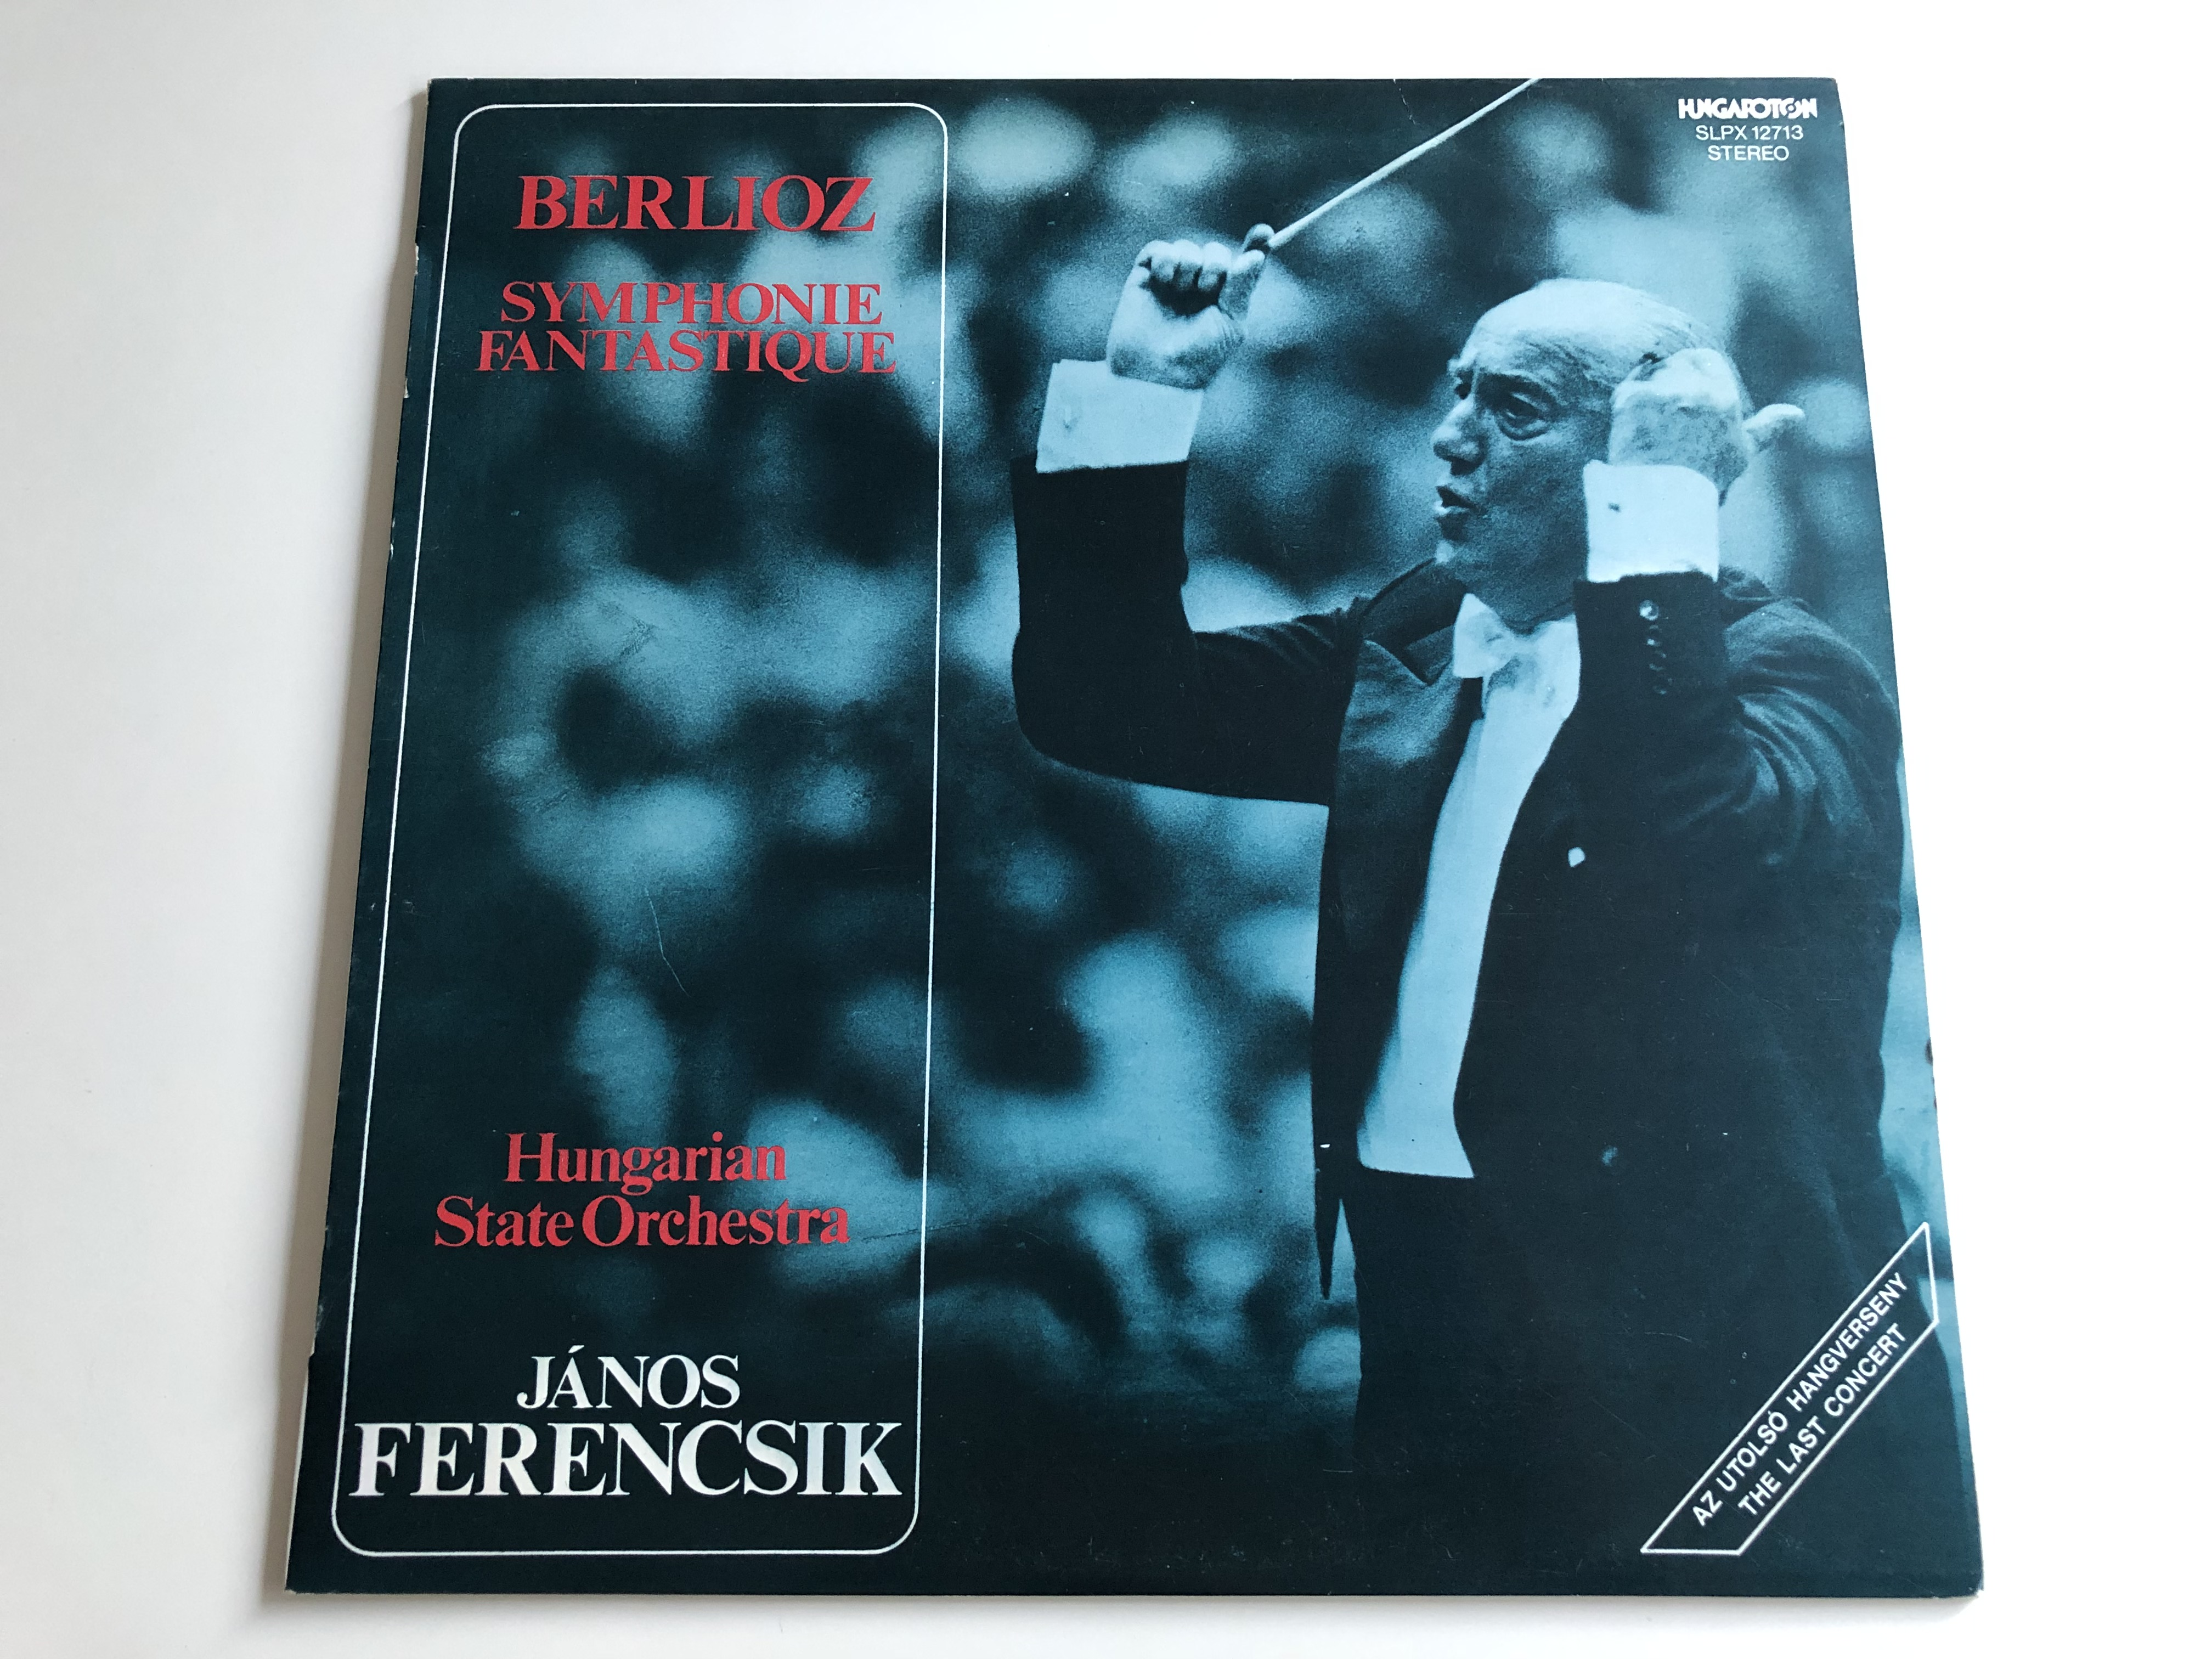 berlioz-symphonie-fantastique-hungarian-state-orchestra-conducted-j-nos-ferencsik-hungaroton-lp-stereo-slpx-12713-1-.jpg